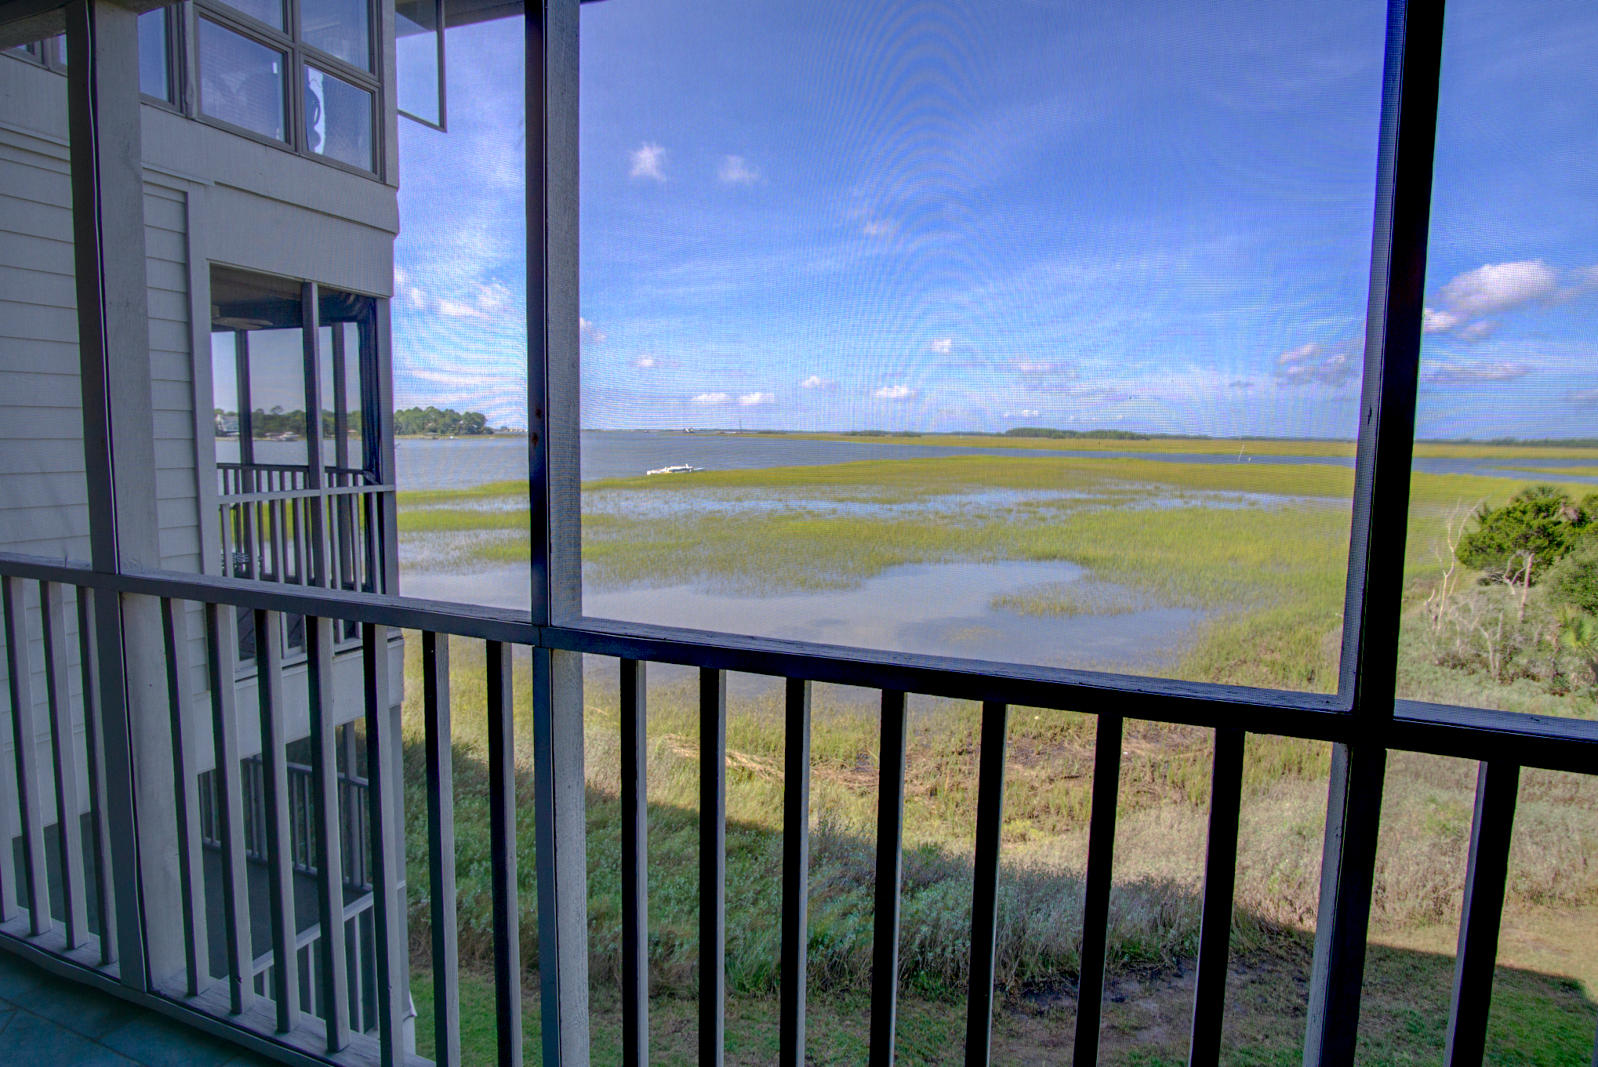 Mariners Cay Homes For Sale - 105 Mariners Cay, Folly Beach, SC - 27